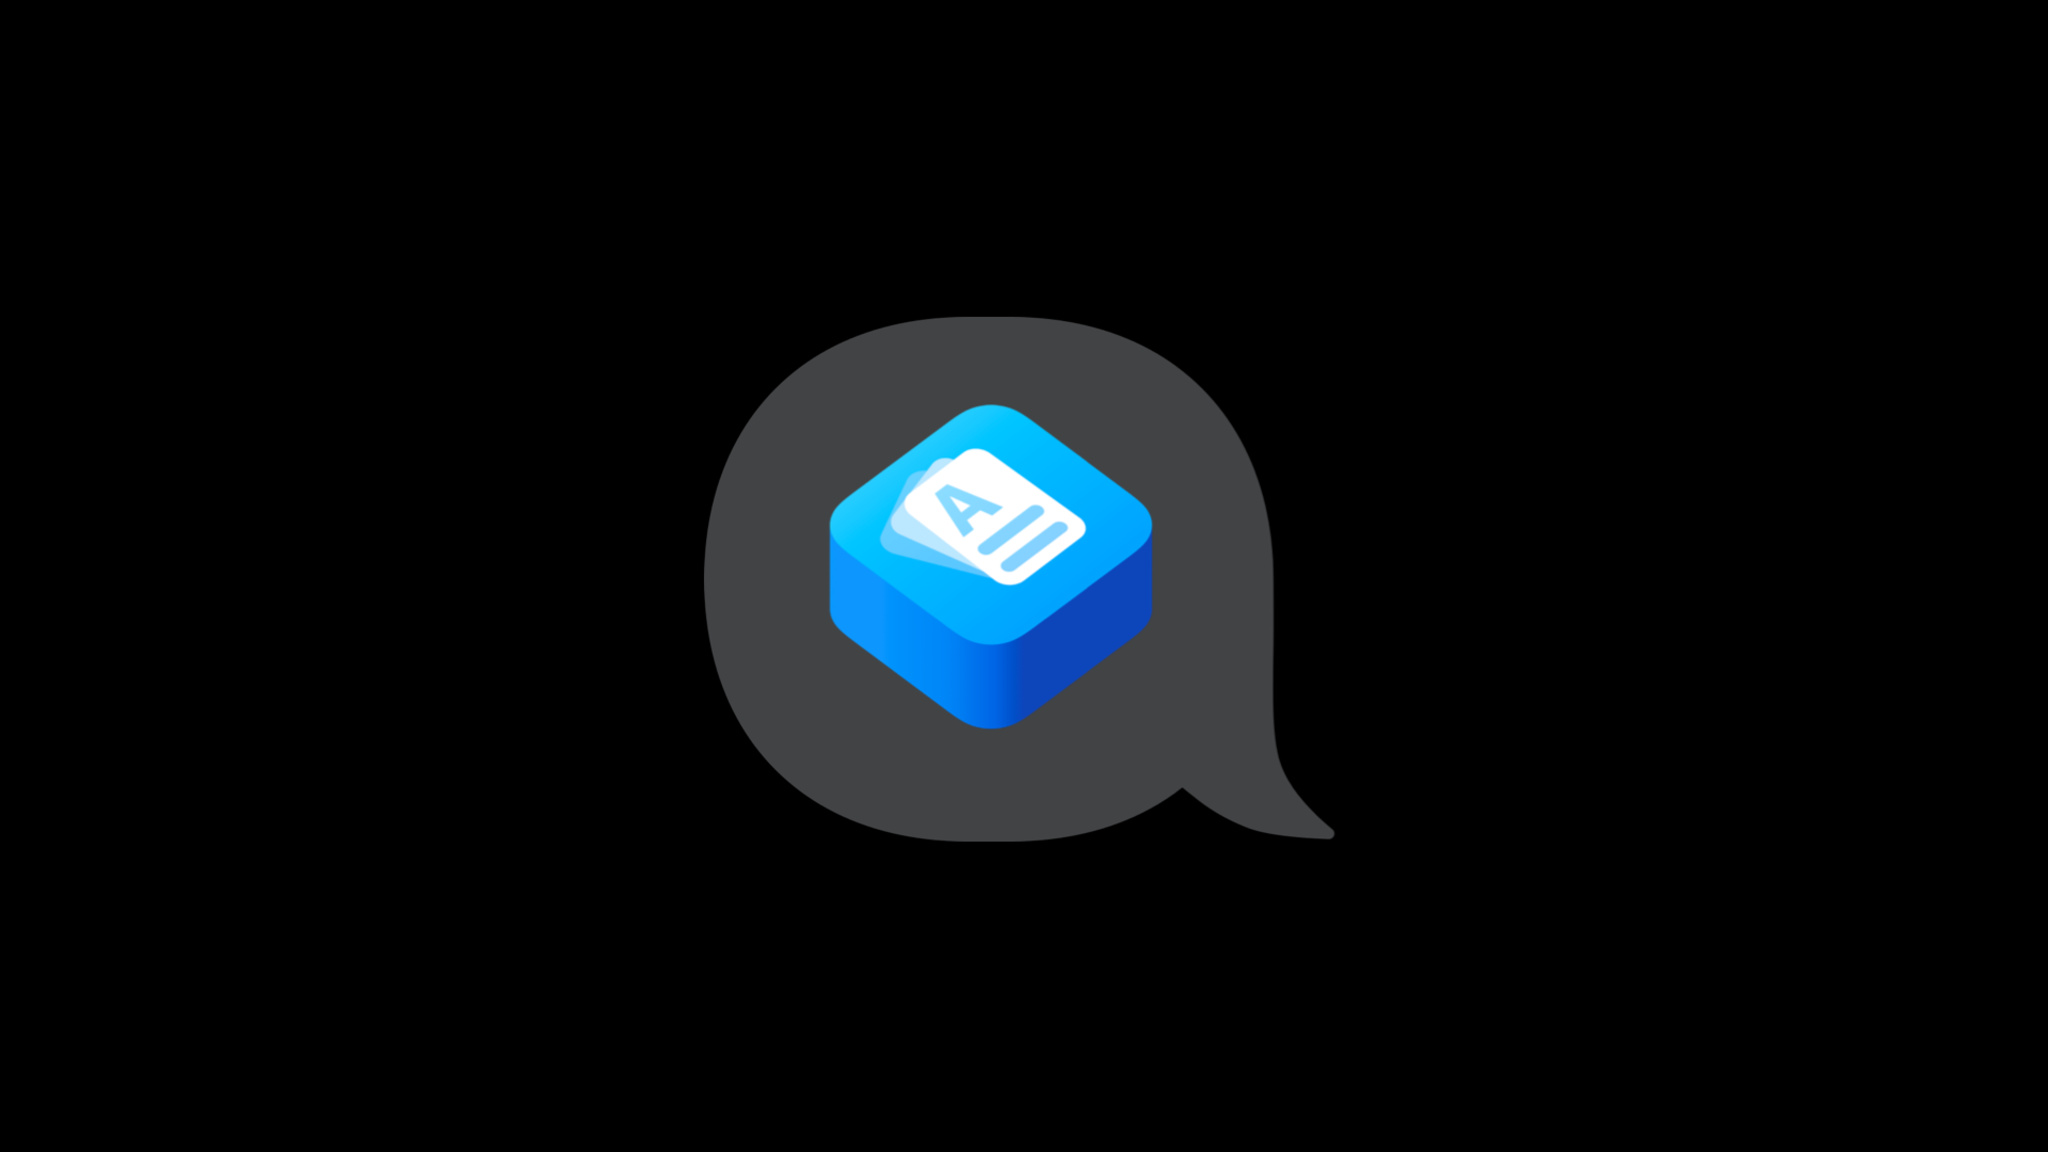 App icon displaying a document,  inside of a speech bubble.